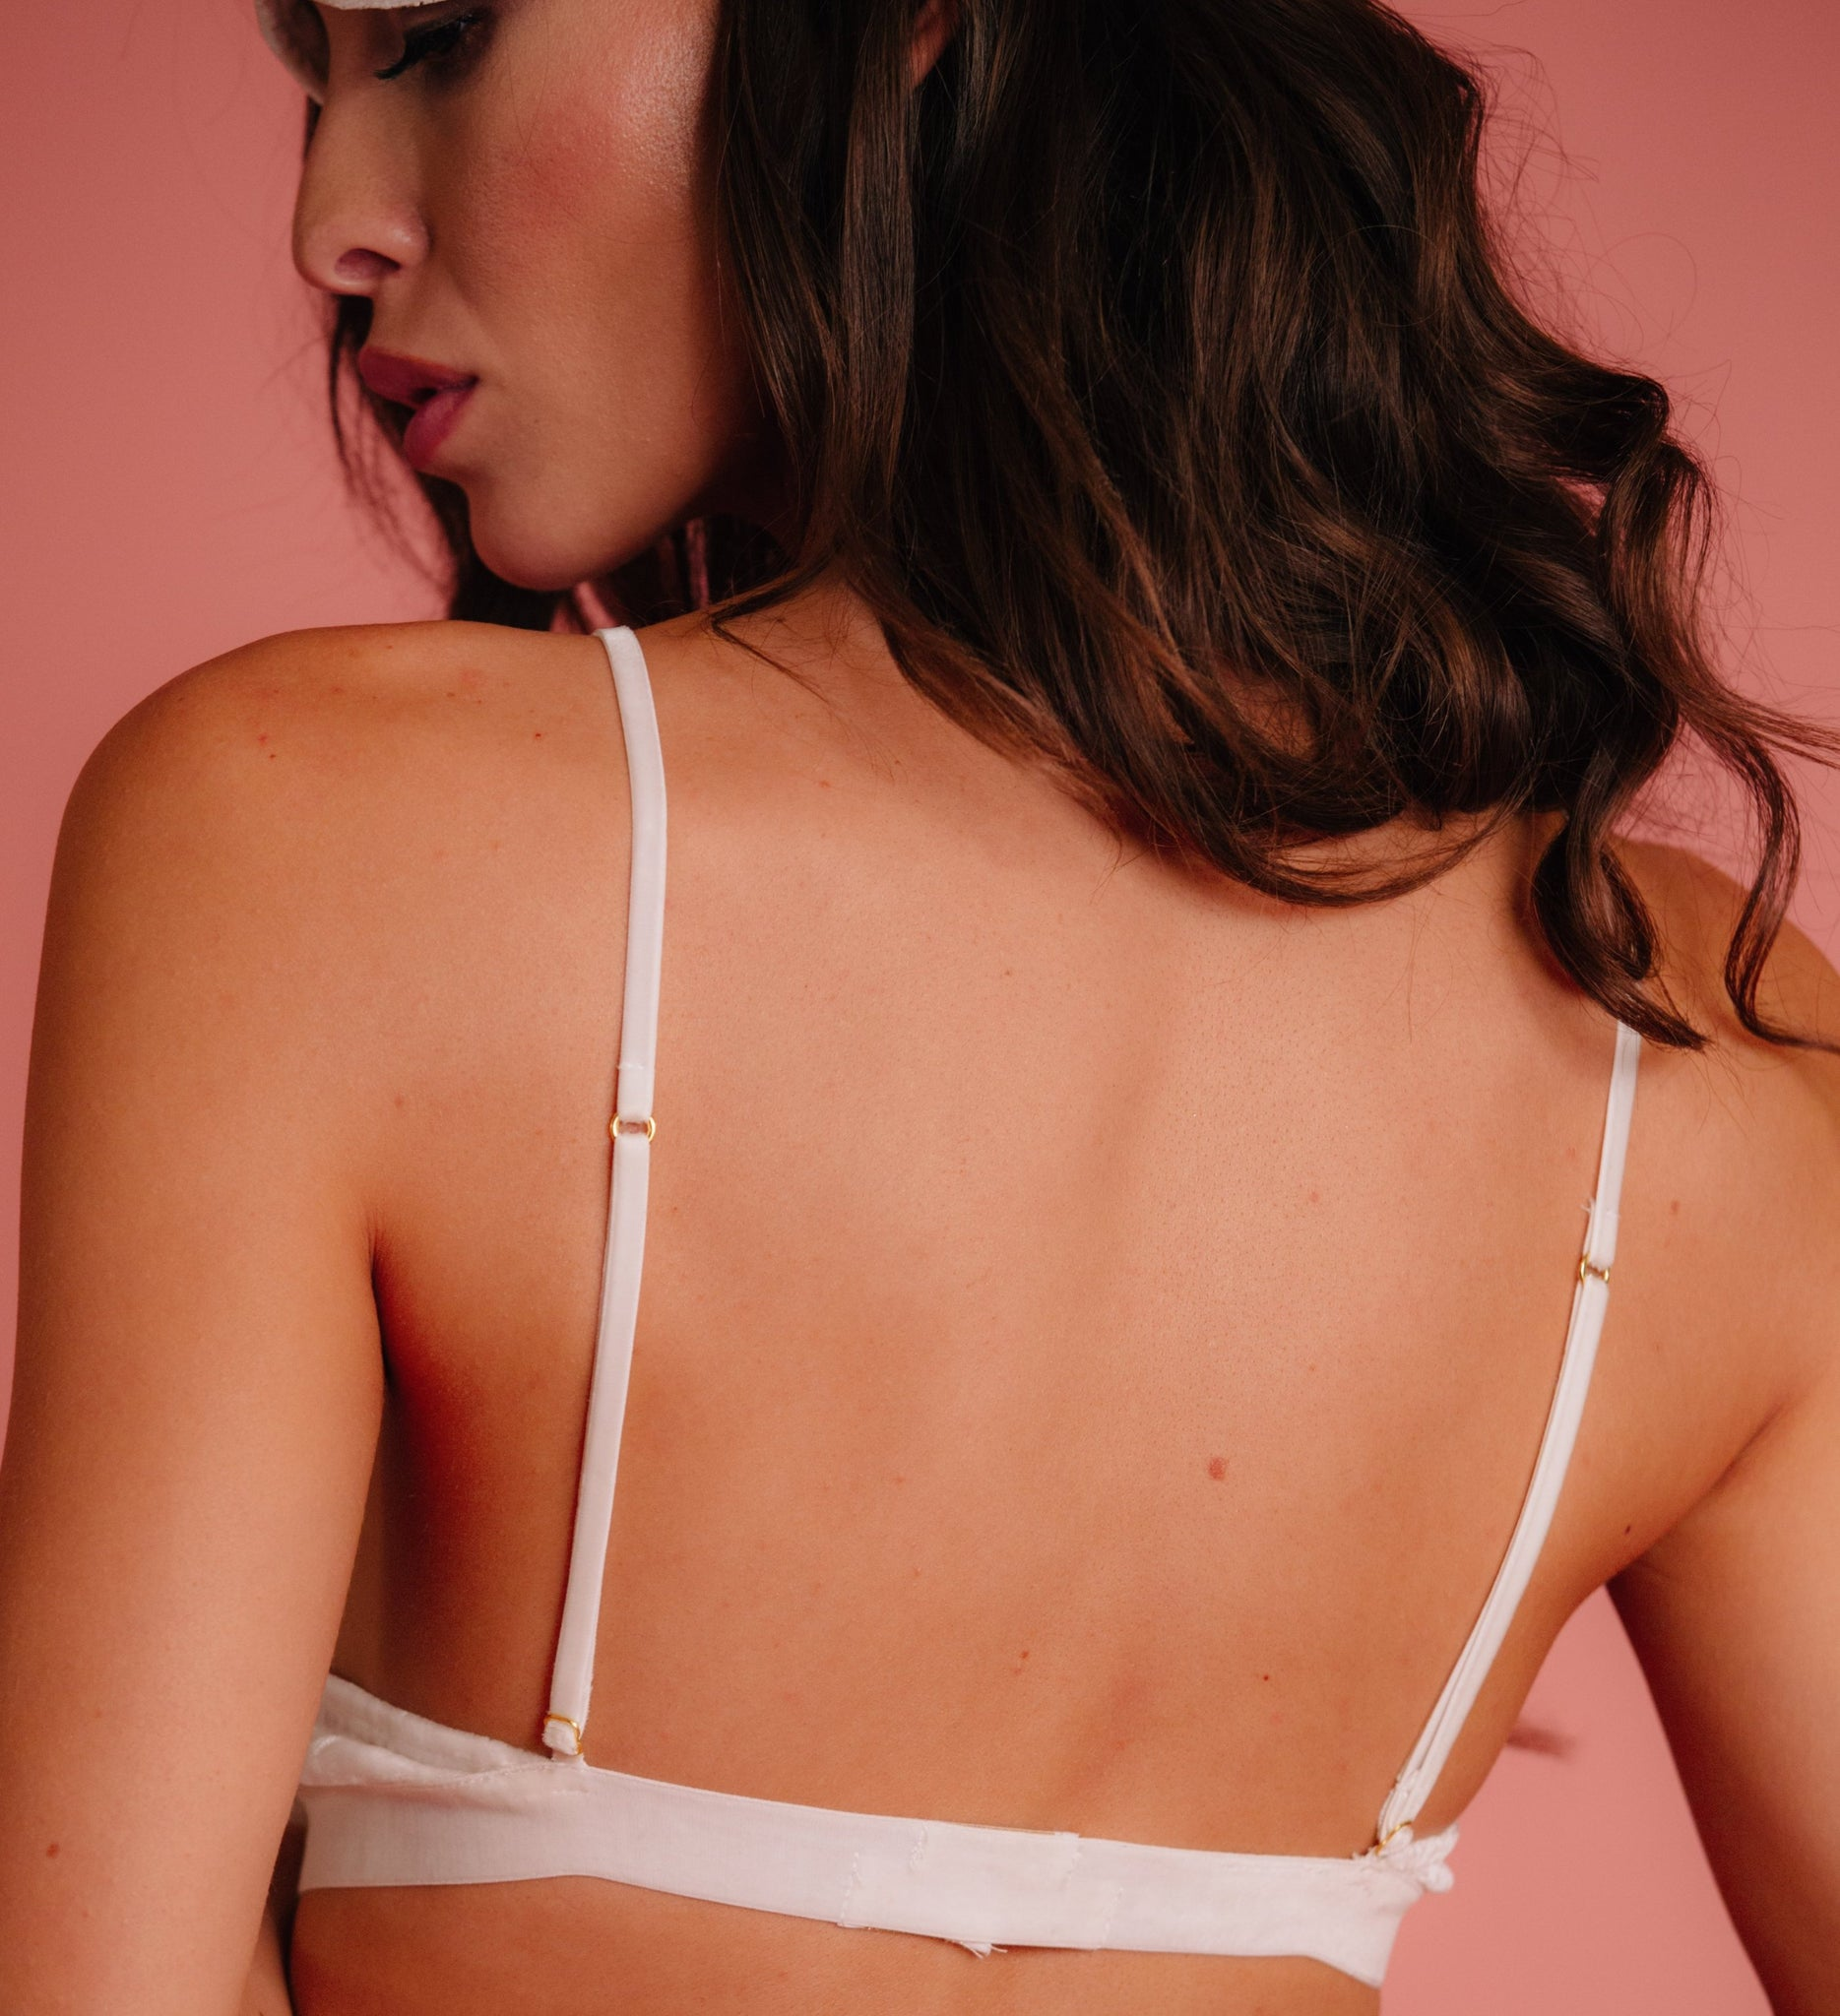 White velvet bralette for wedding night